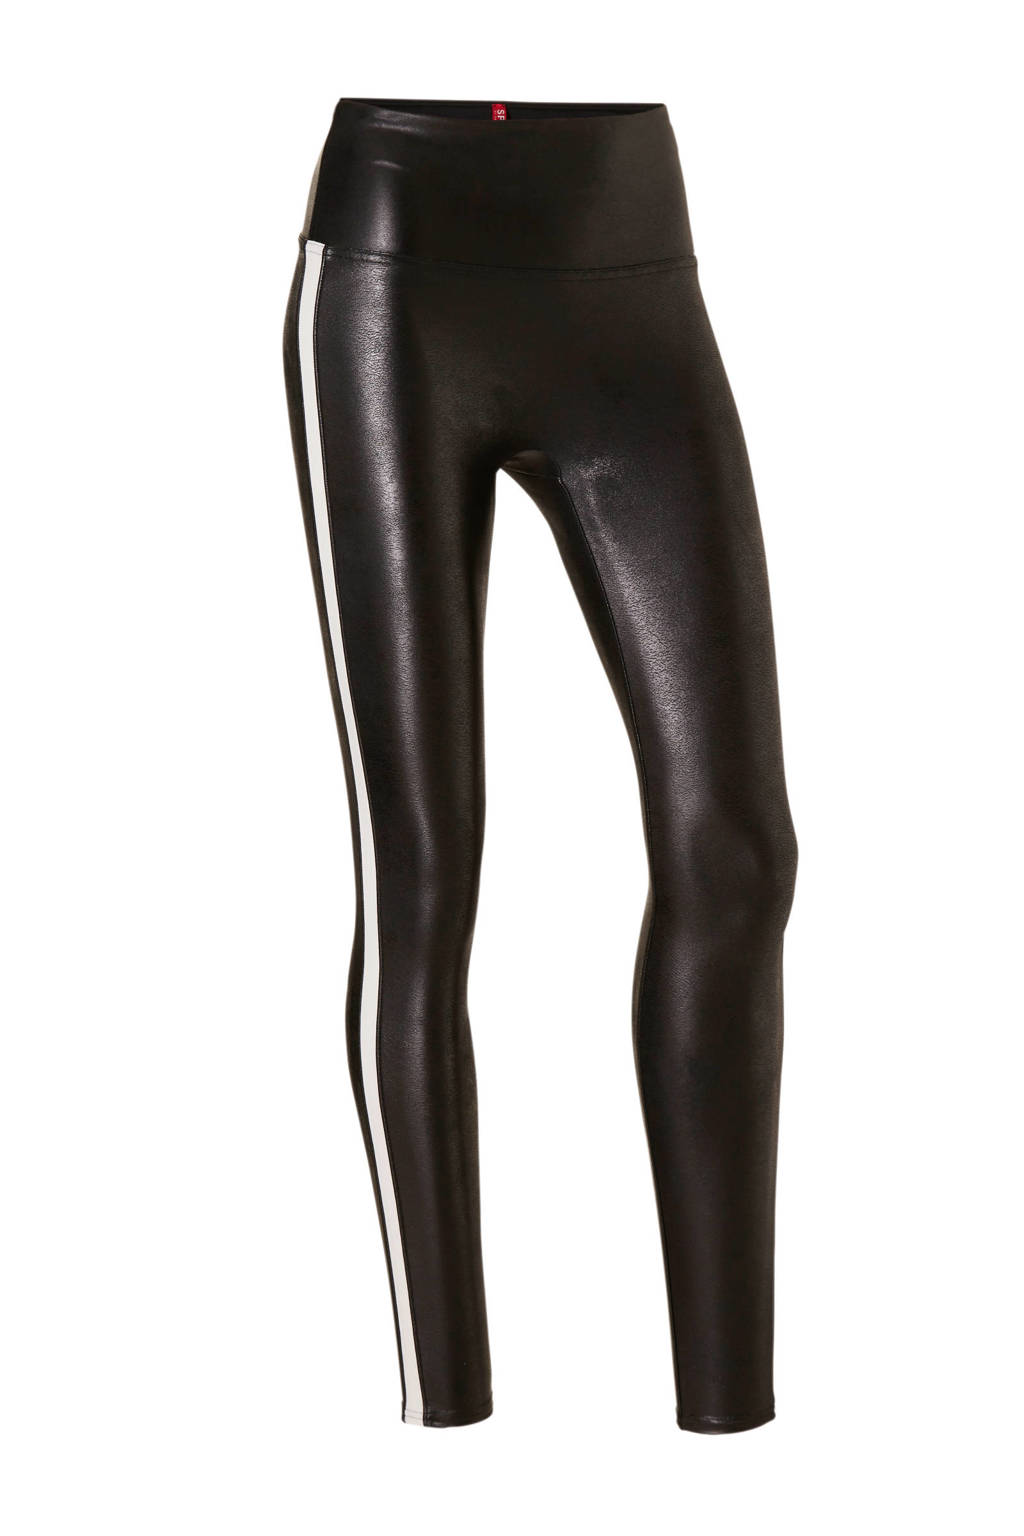 SPANX corrigerende legging Faux Leather Side Stripe zwart, Zwart/wit